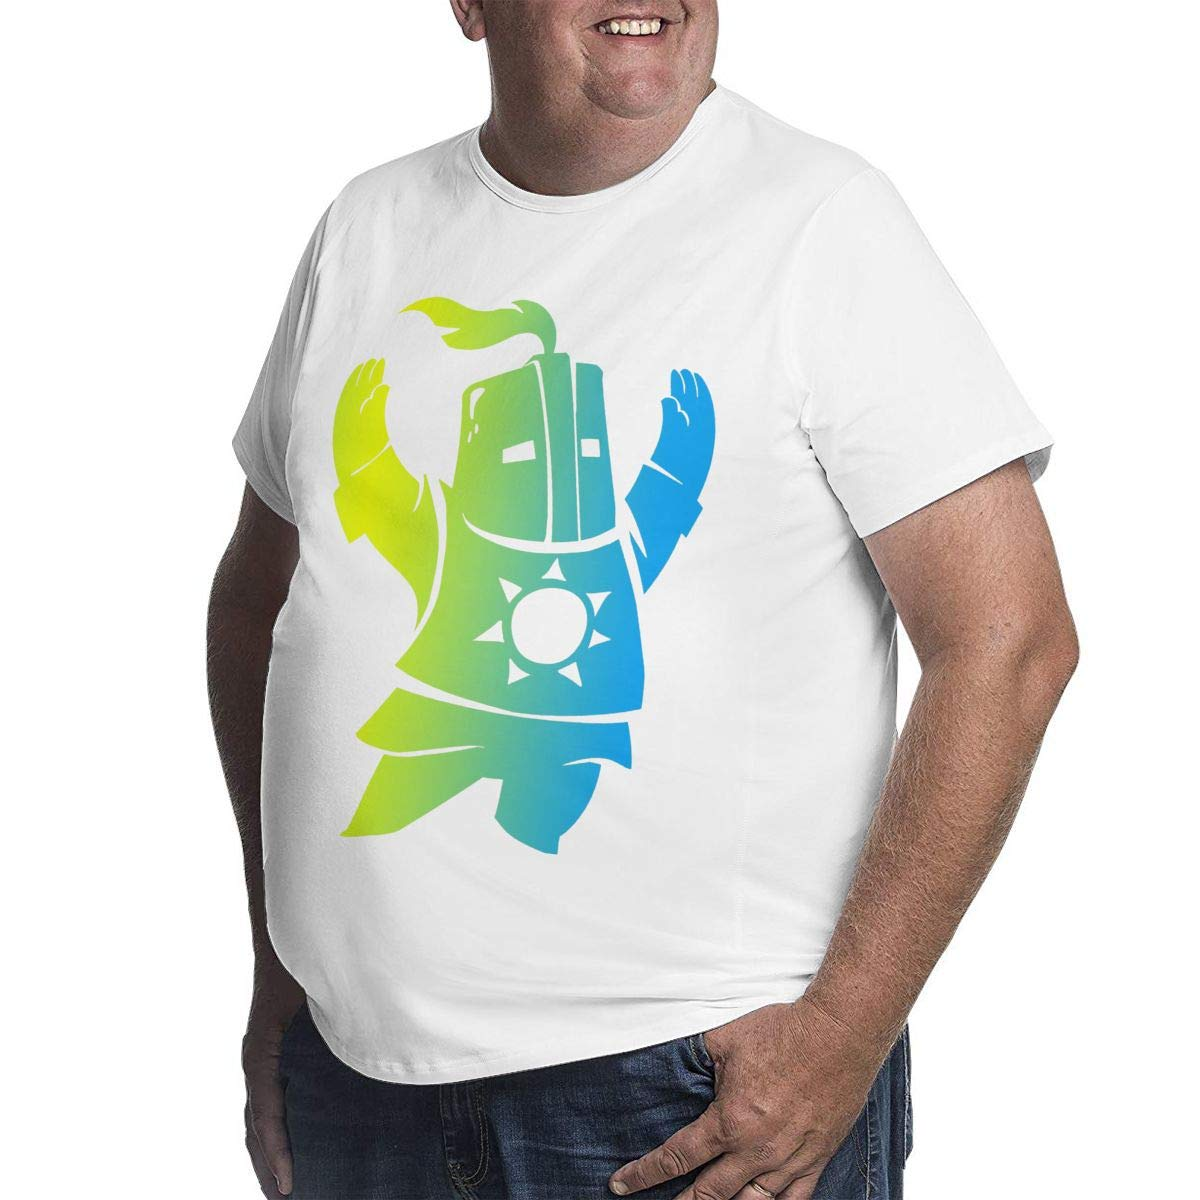 Short Sleeve Tee with Crew Neck KGYUT Souls Sunbro Praise The Sun Big and Tall T-Shirt for Men